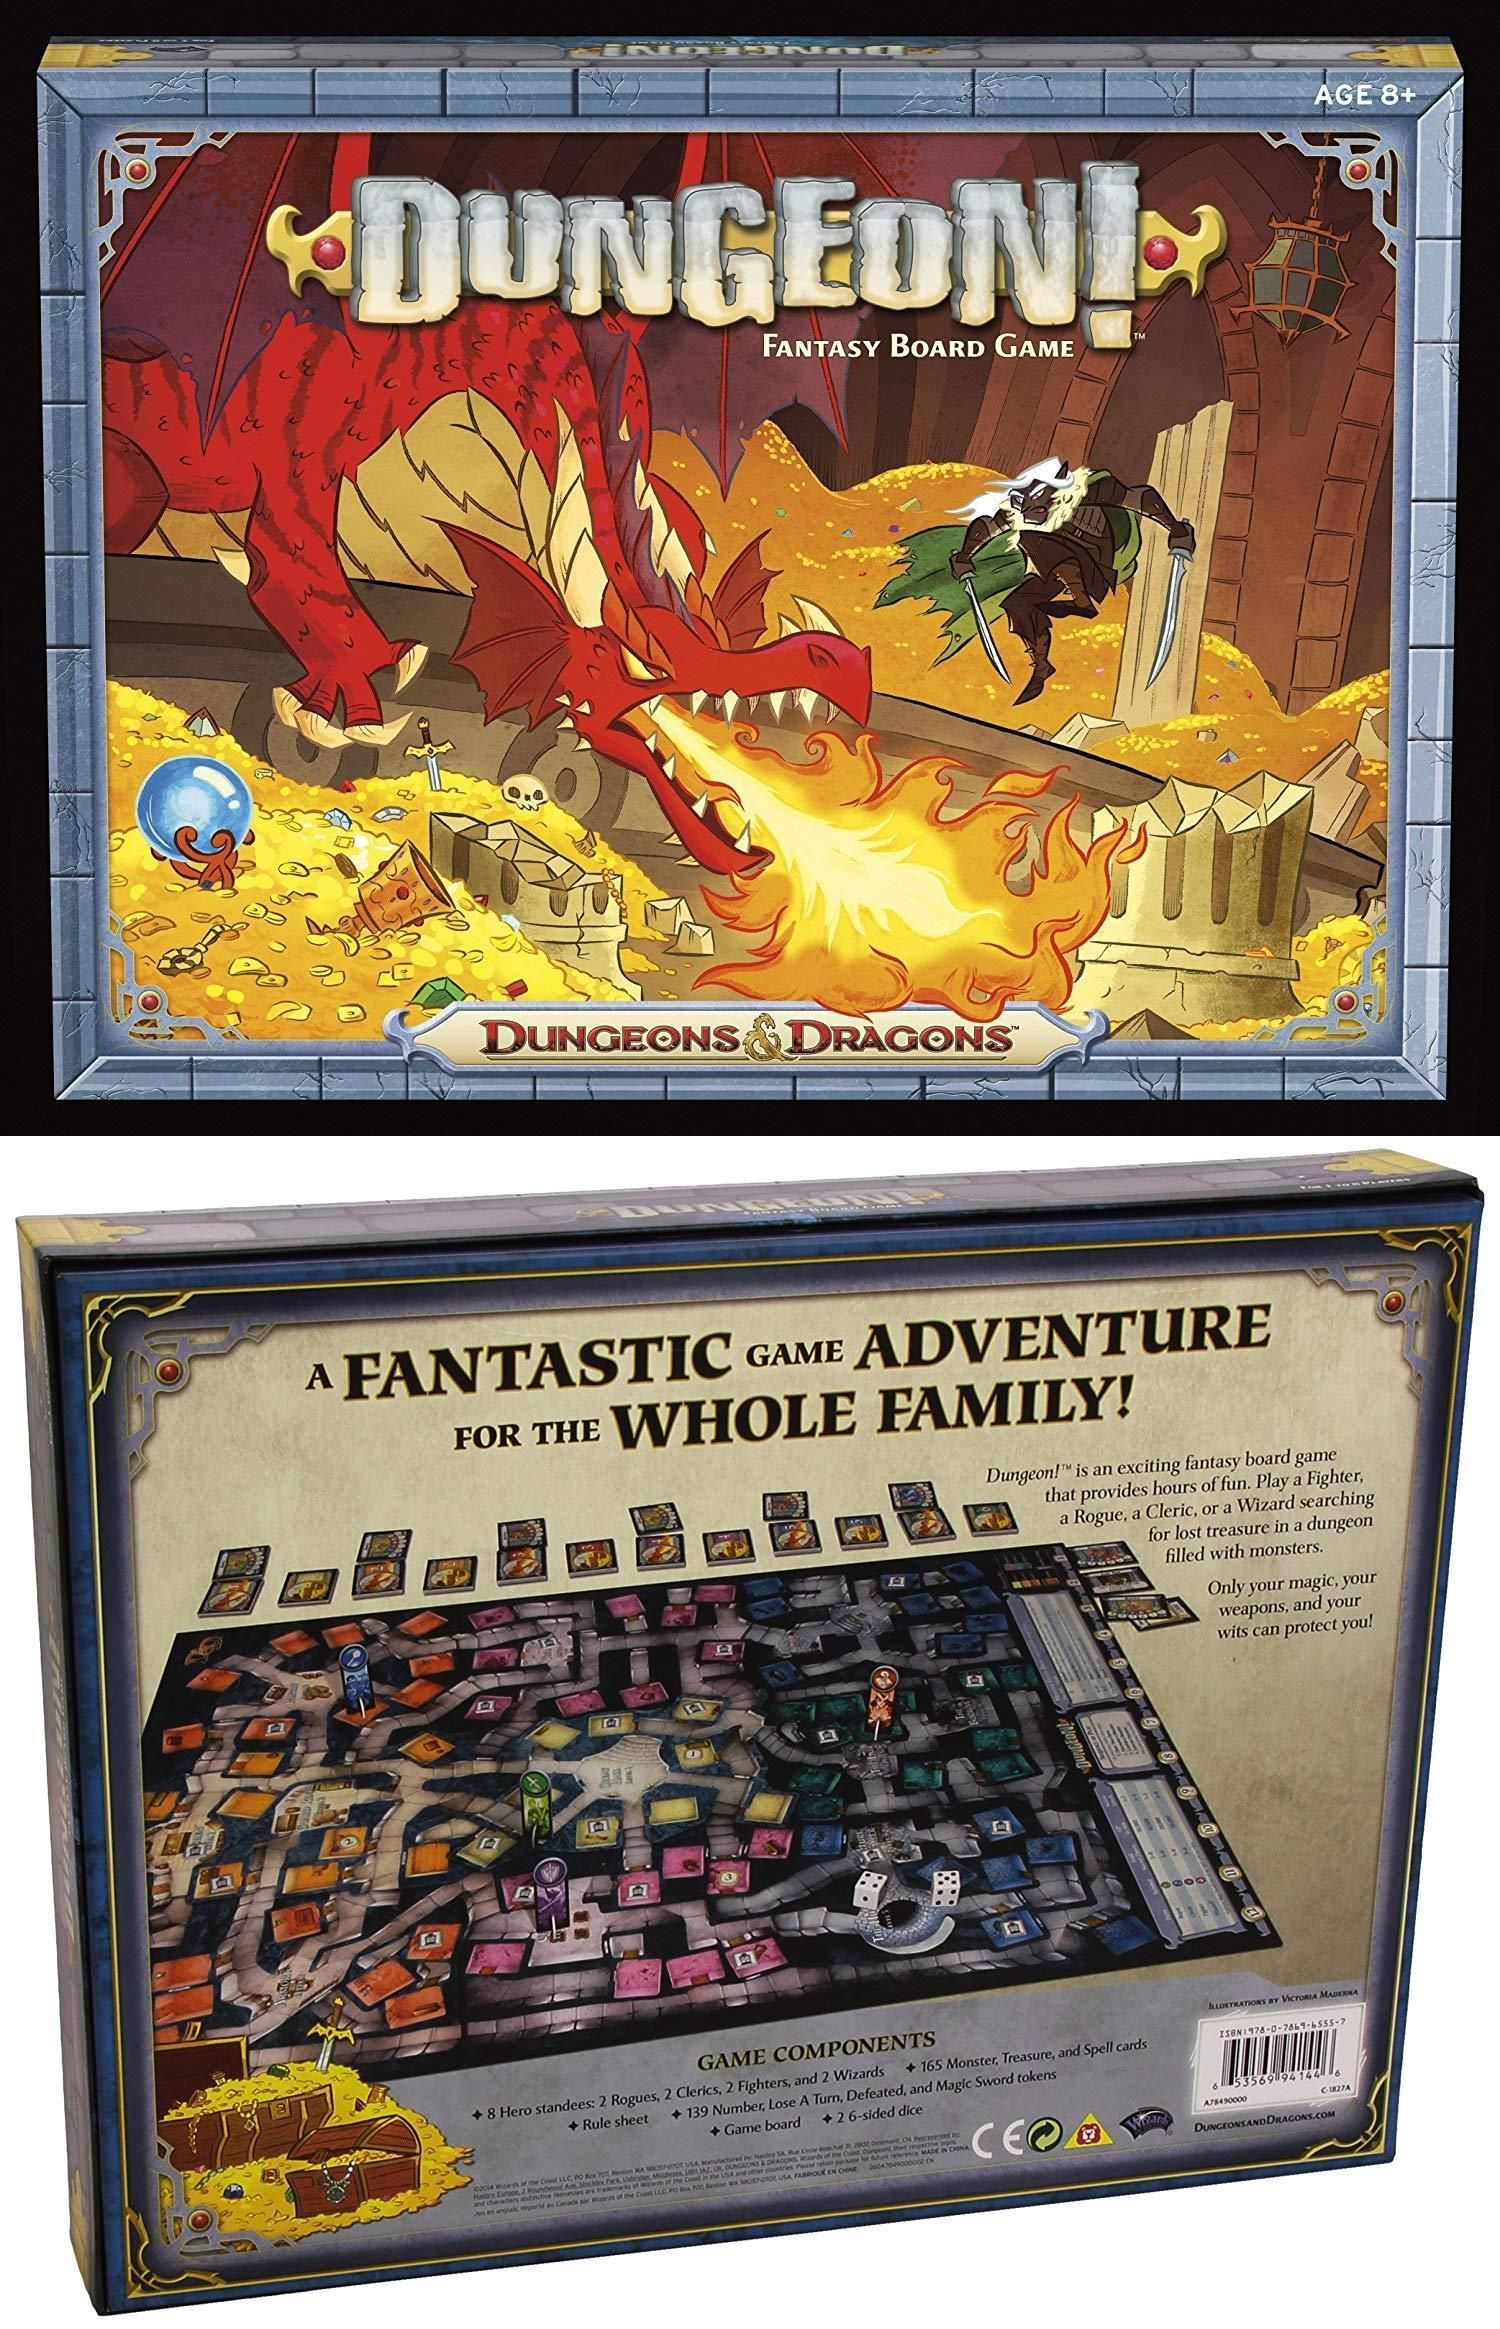 Wizards of the Coast A78490000 Dungeon! Fantasy Board Game